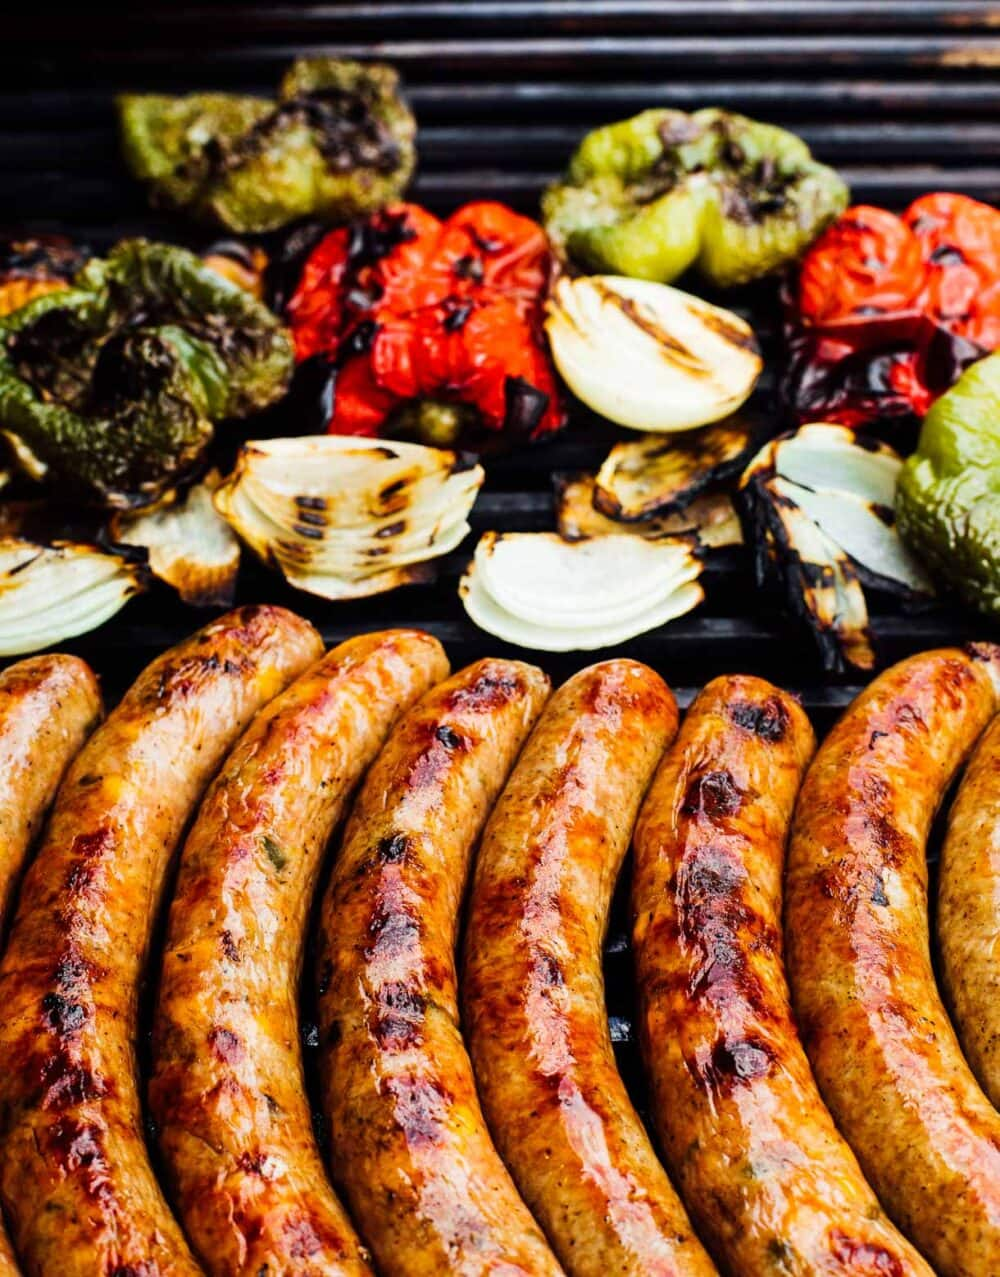 brats and peppers, onions, on a grill